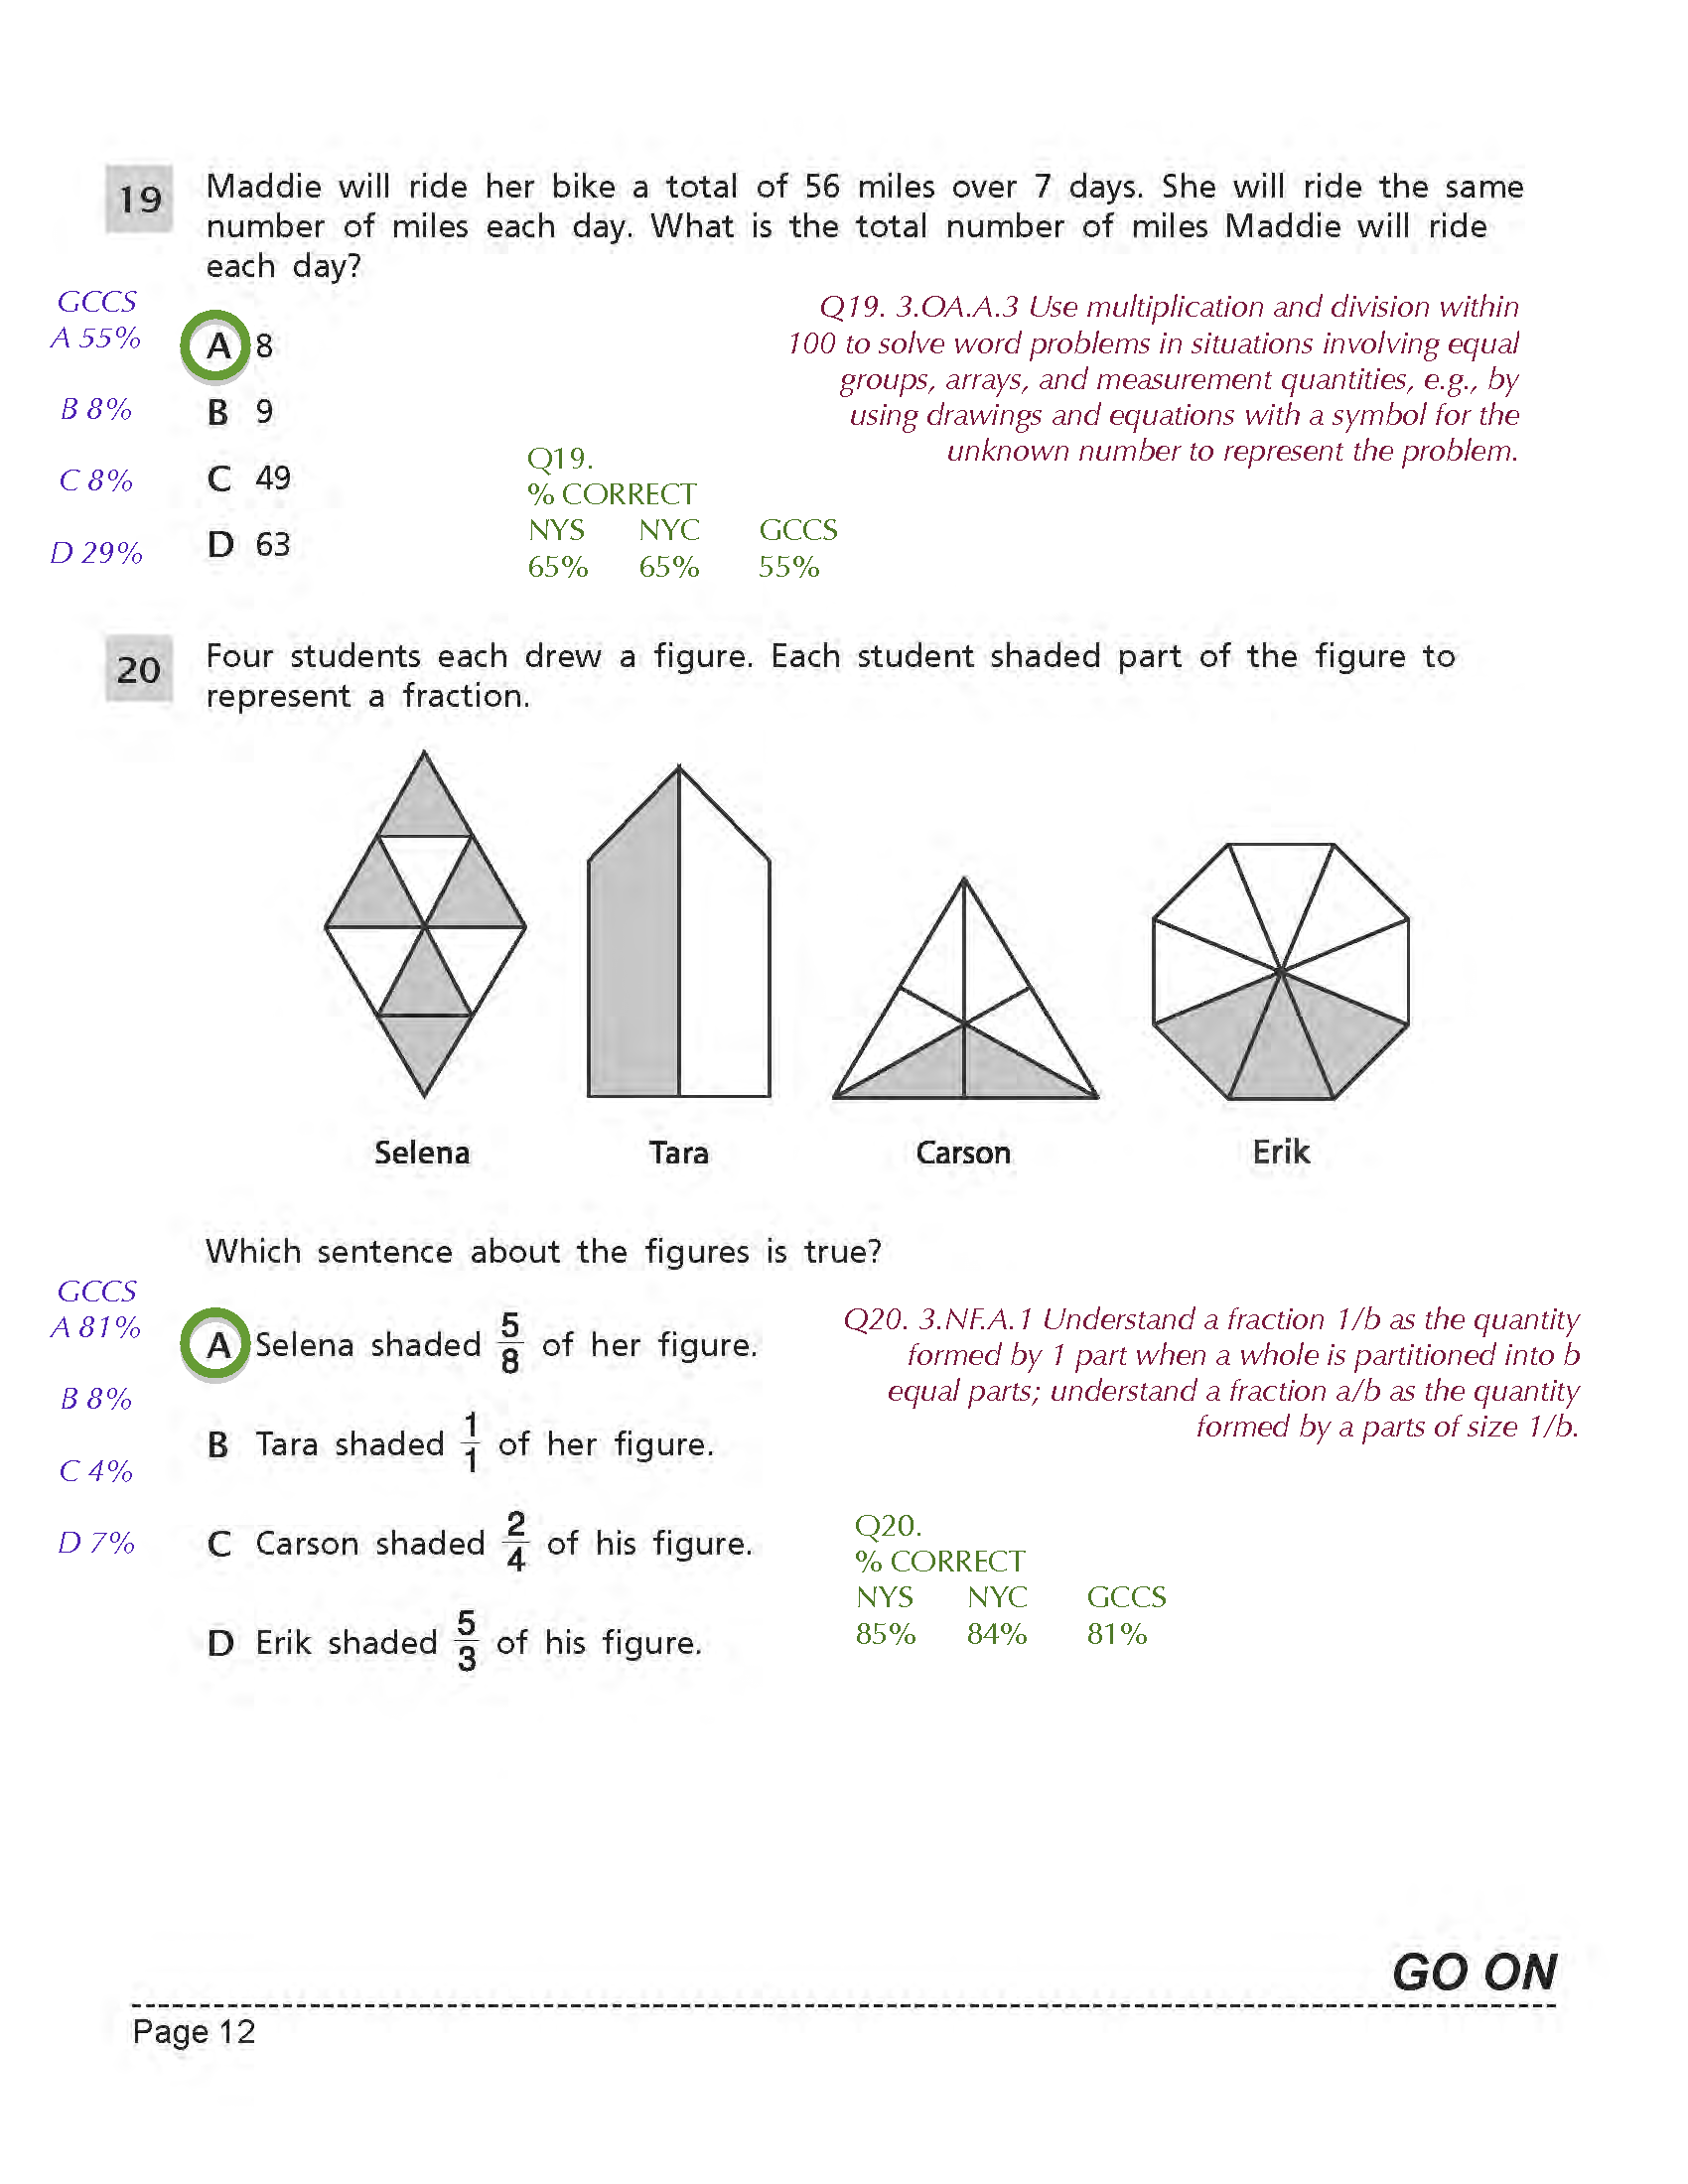 image ANNOTATED_GR3 MATH_2016-released-items-ela-g3 - Copy.png